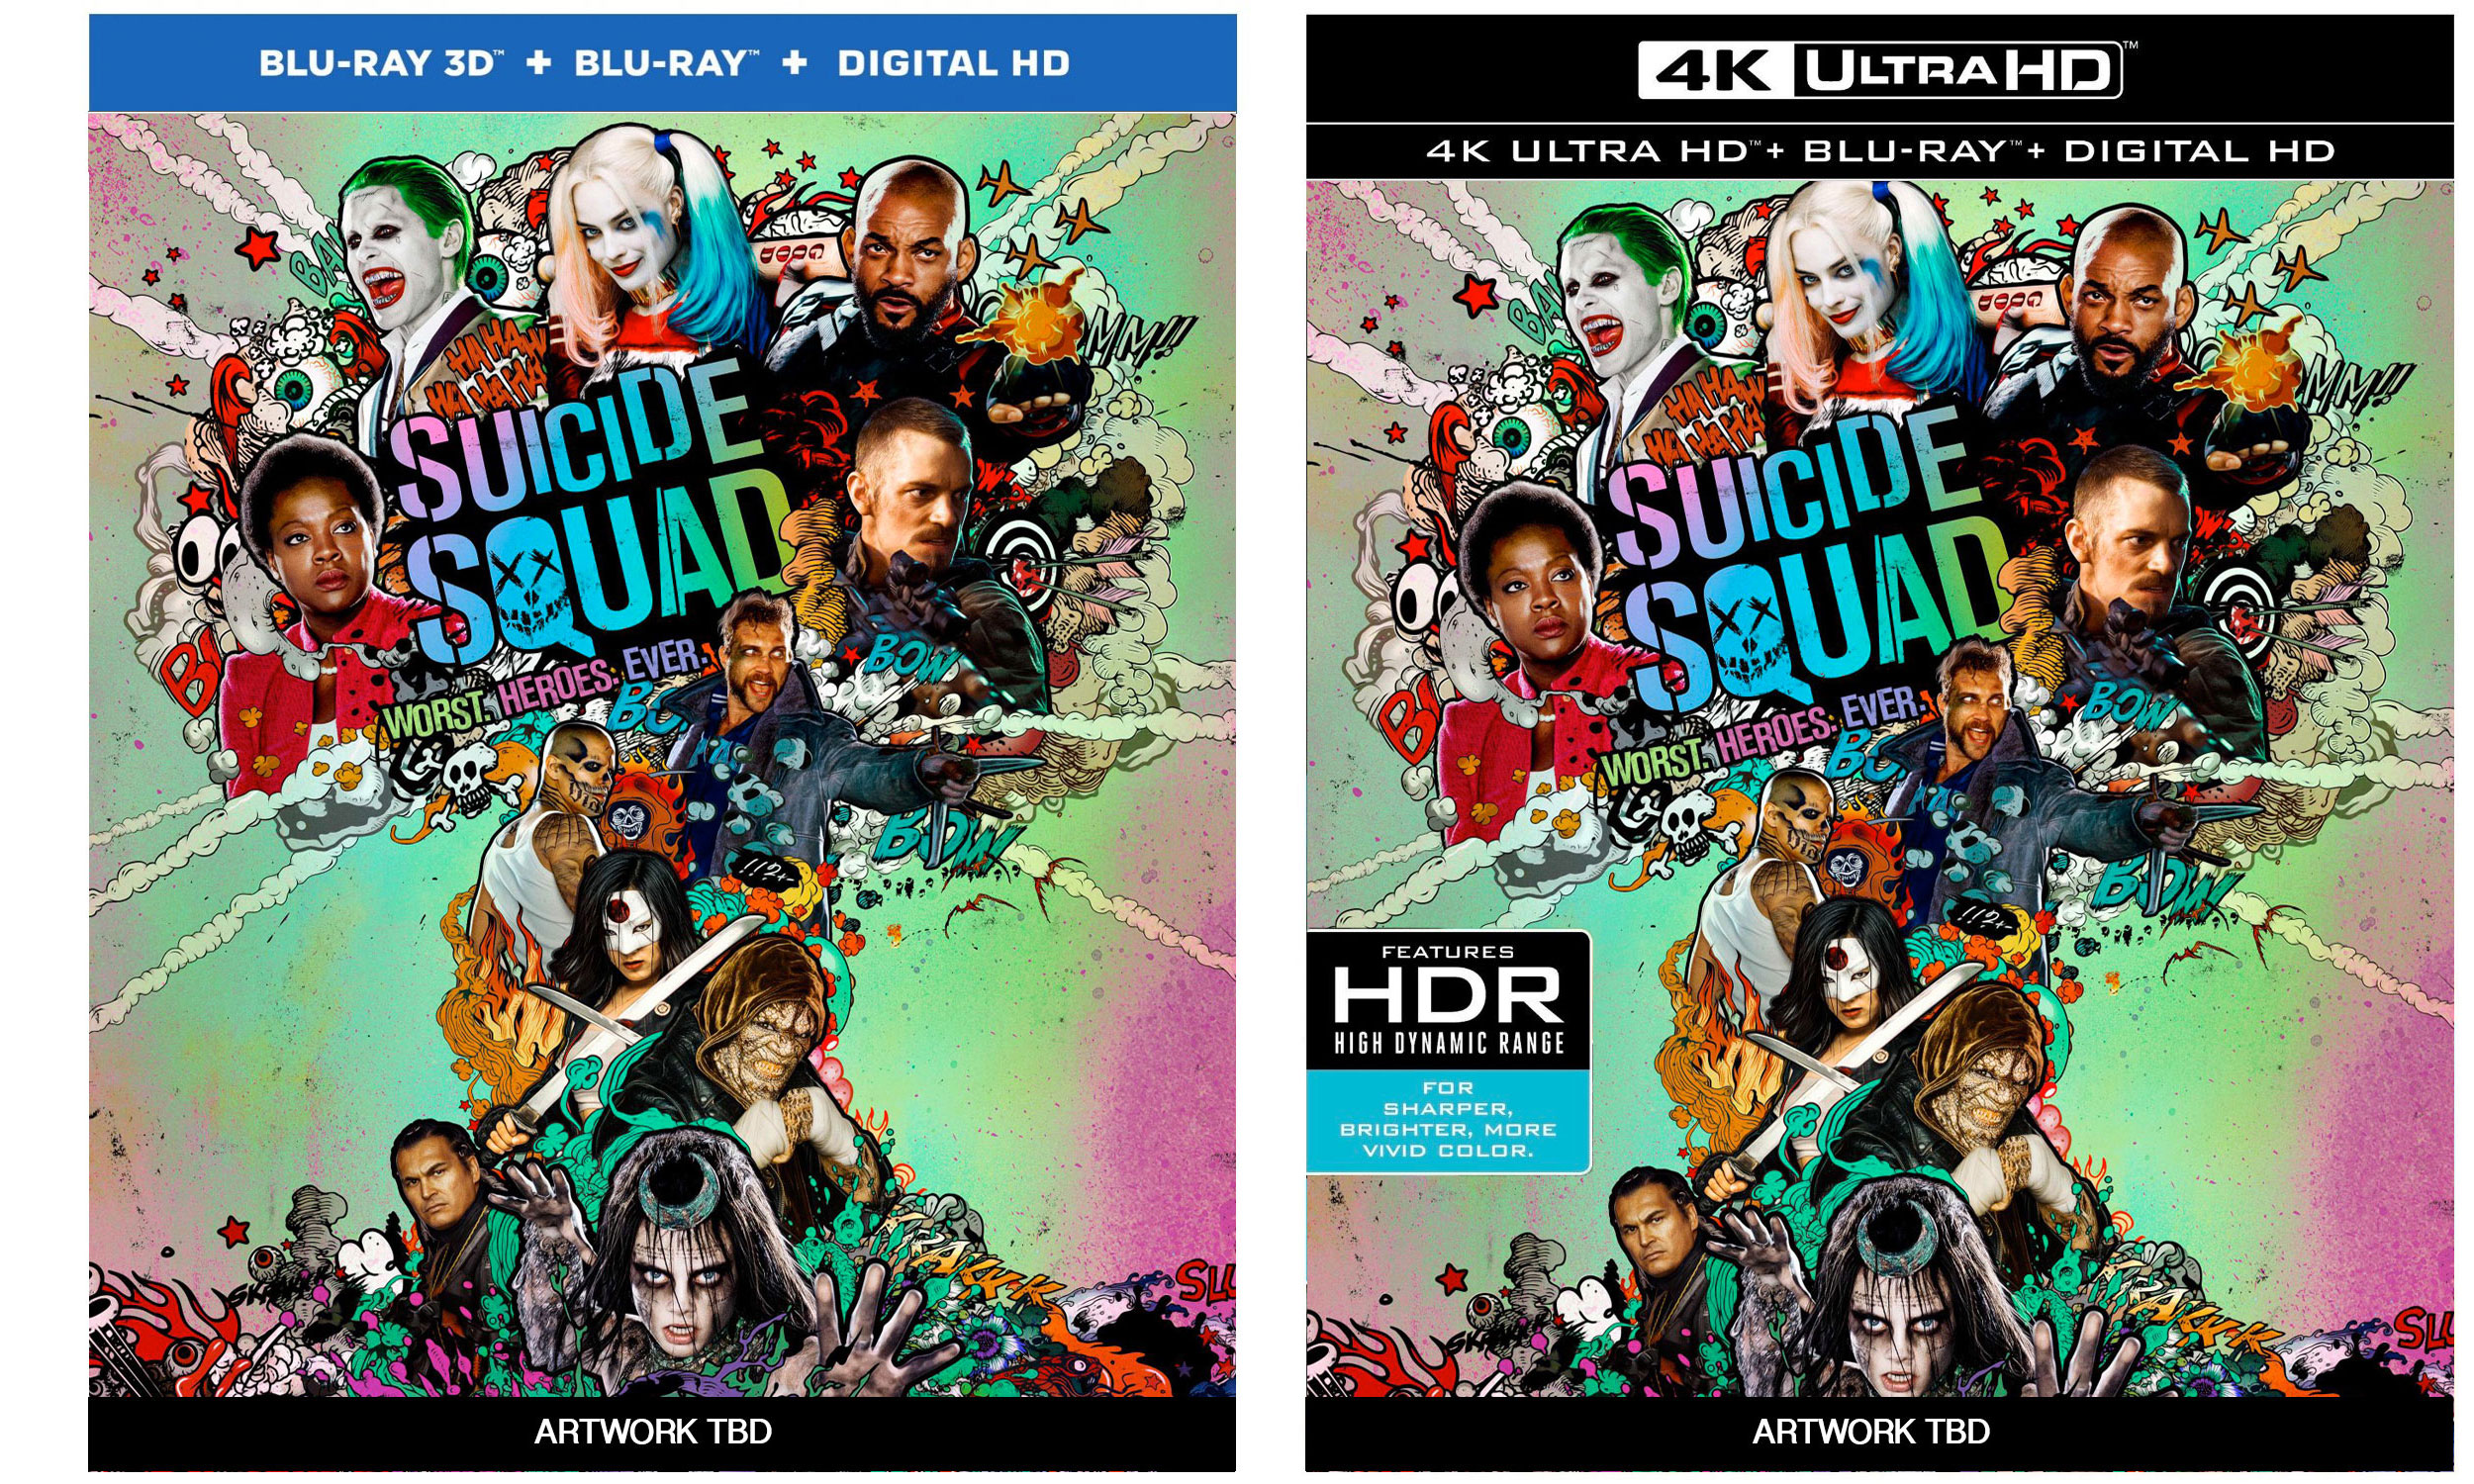 Suicide Squad Blu-ray & 4k Ultra HD Blu-ray Available For Pre-order – HD Report